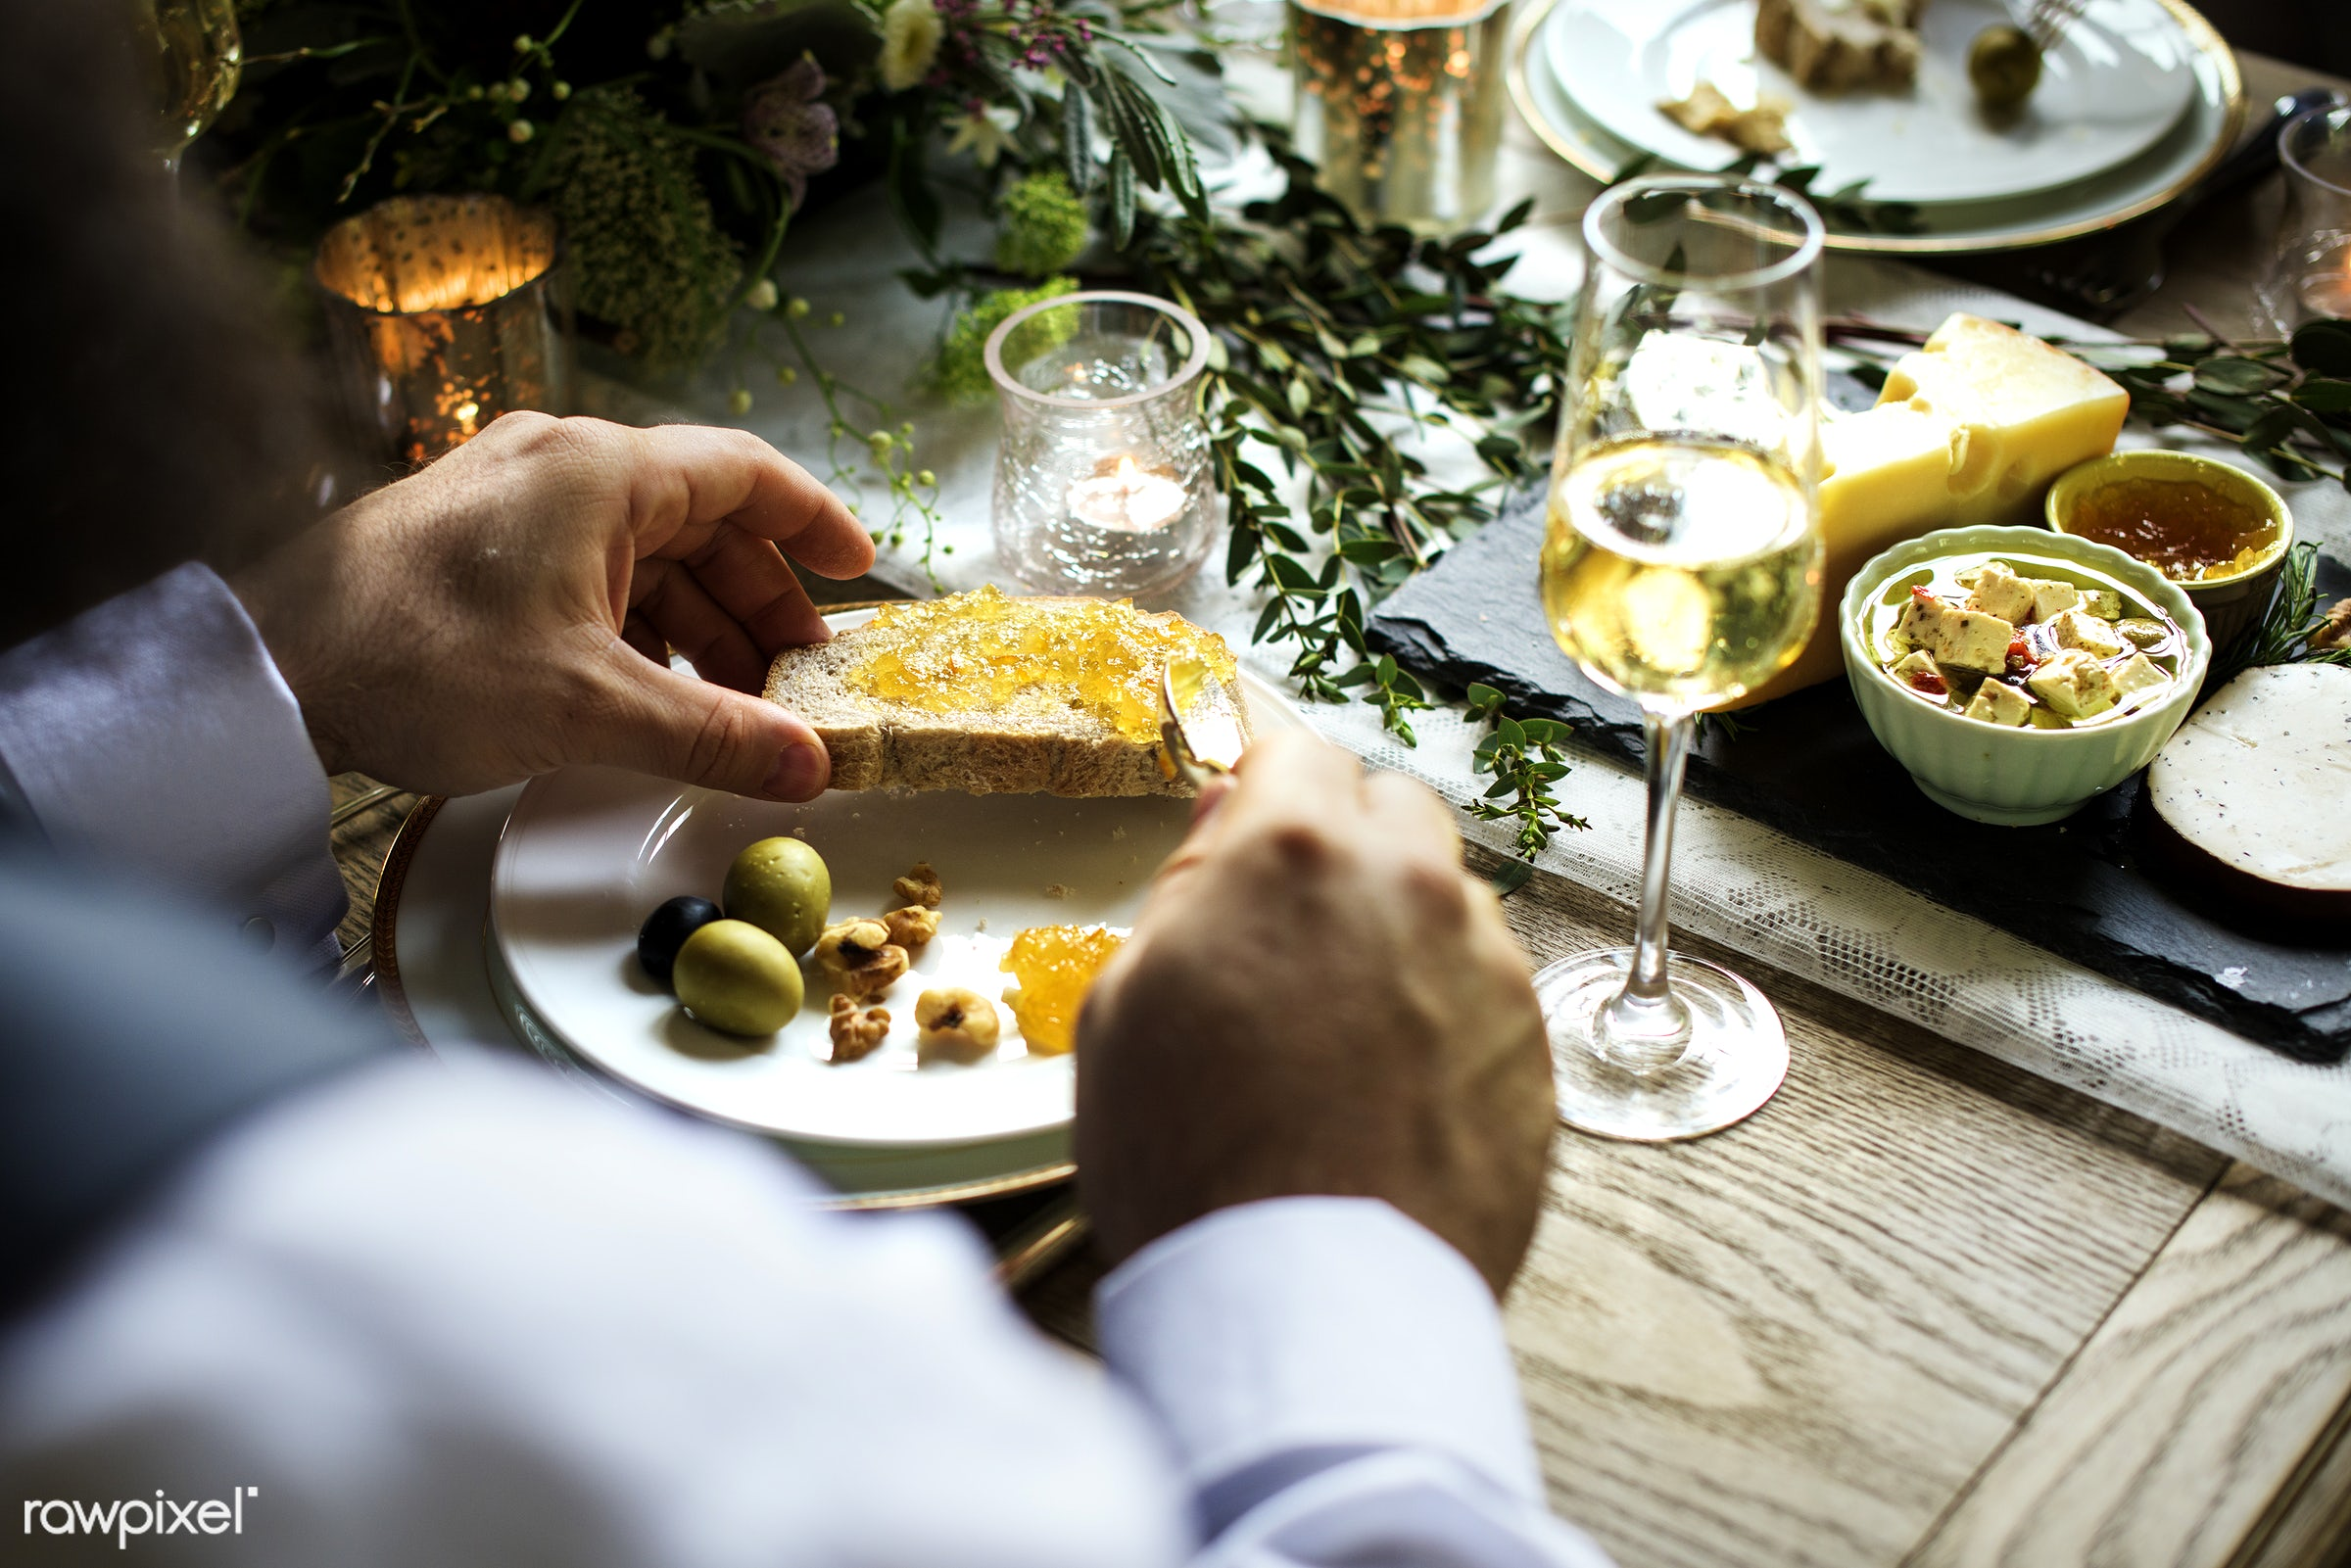 cuisine, holding, occasion, party, people, hands, bread, banquet, man, olives, meal, marmalade, table setting, dinner, jams...